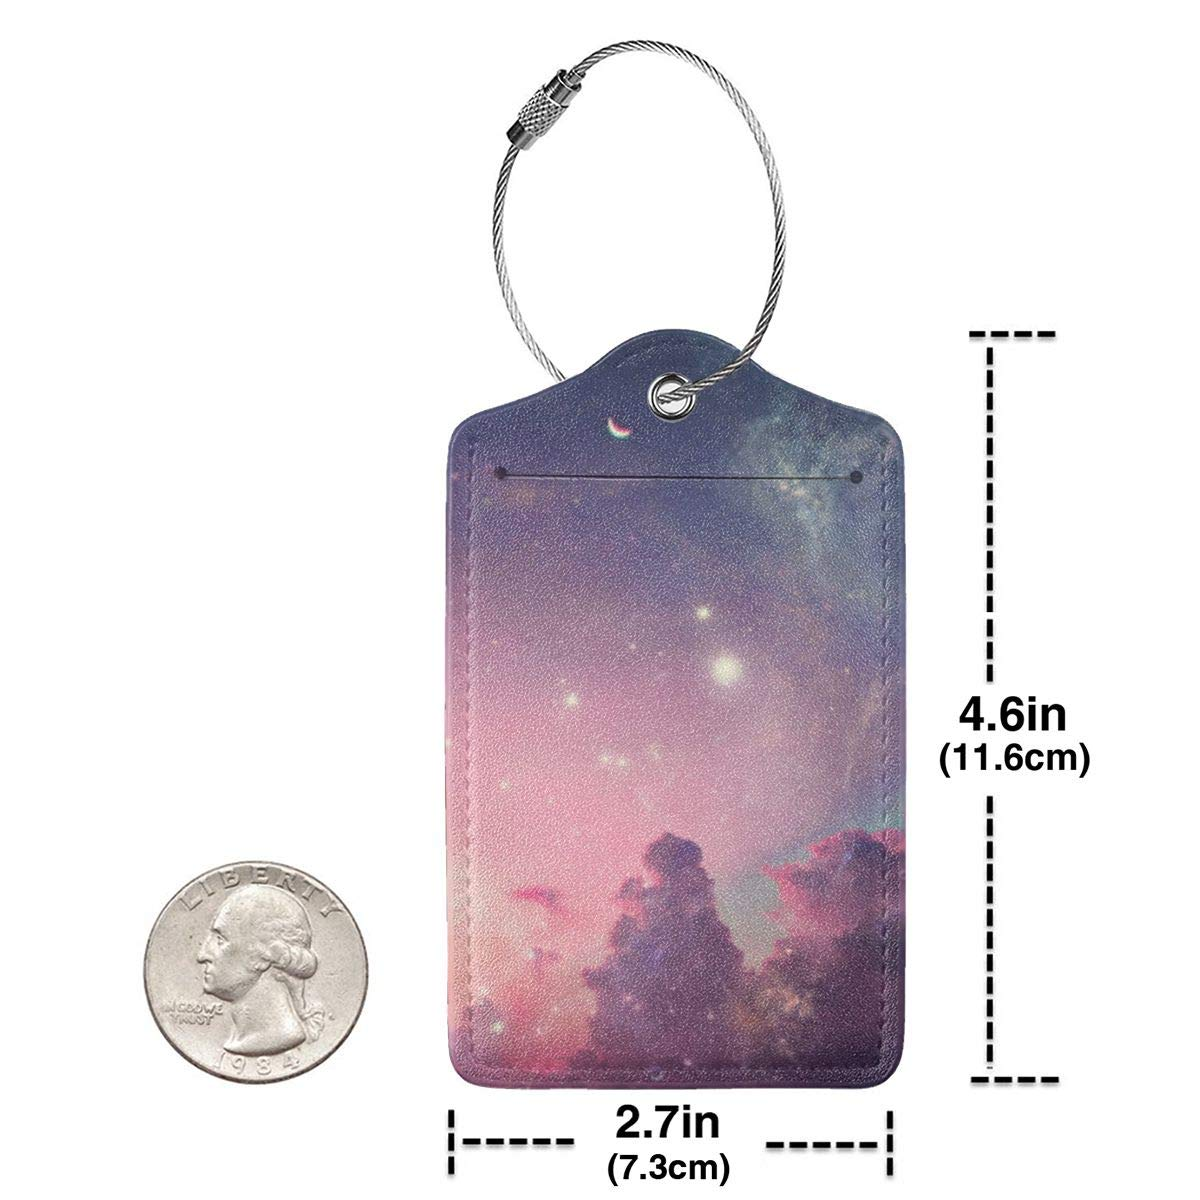 GoldK The Planet is Destroyed Leather Luggage Tags Baggage Bag Instrument Tag Travel Labels Accessories with Privacy Cover